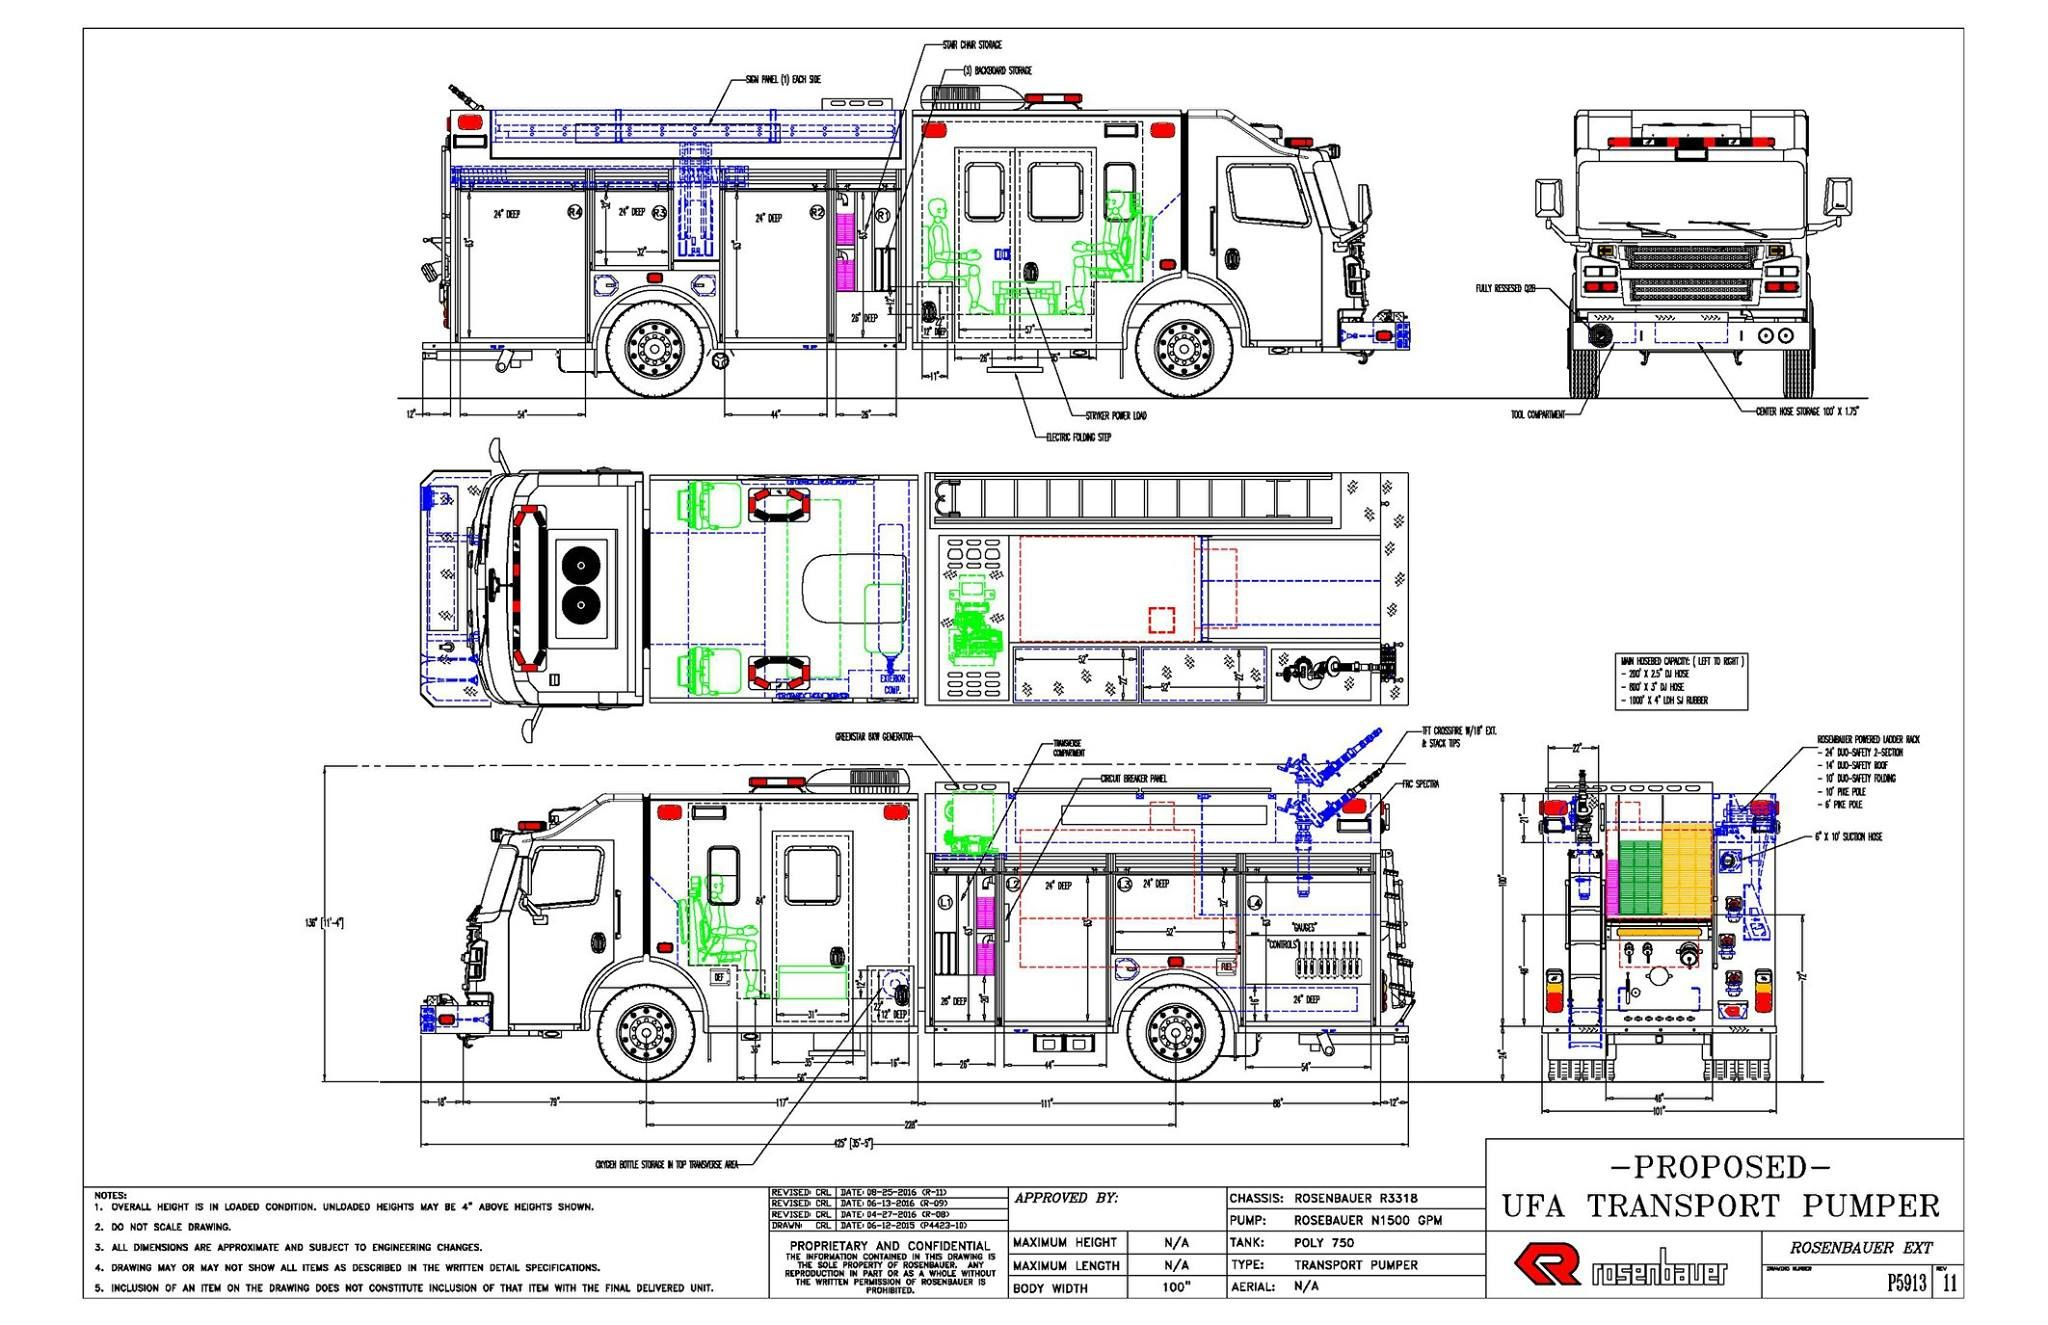 small resolution of unified fire authority rosenbauer fire engine drawing fire engine fire trucks firefighter fire